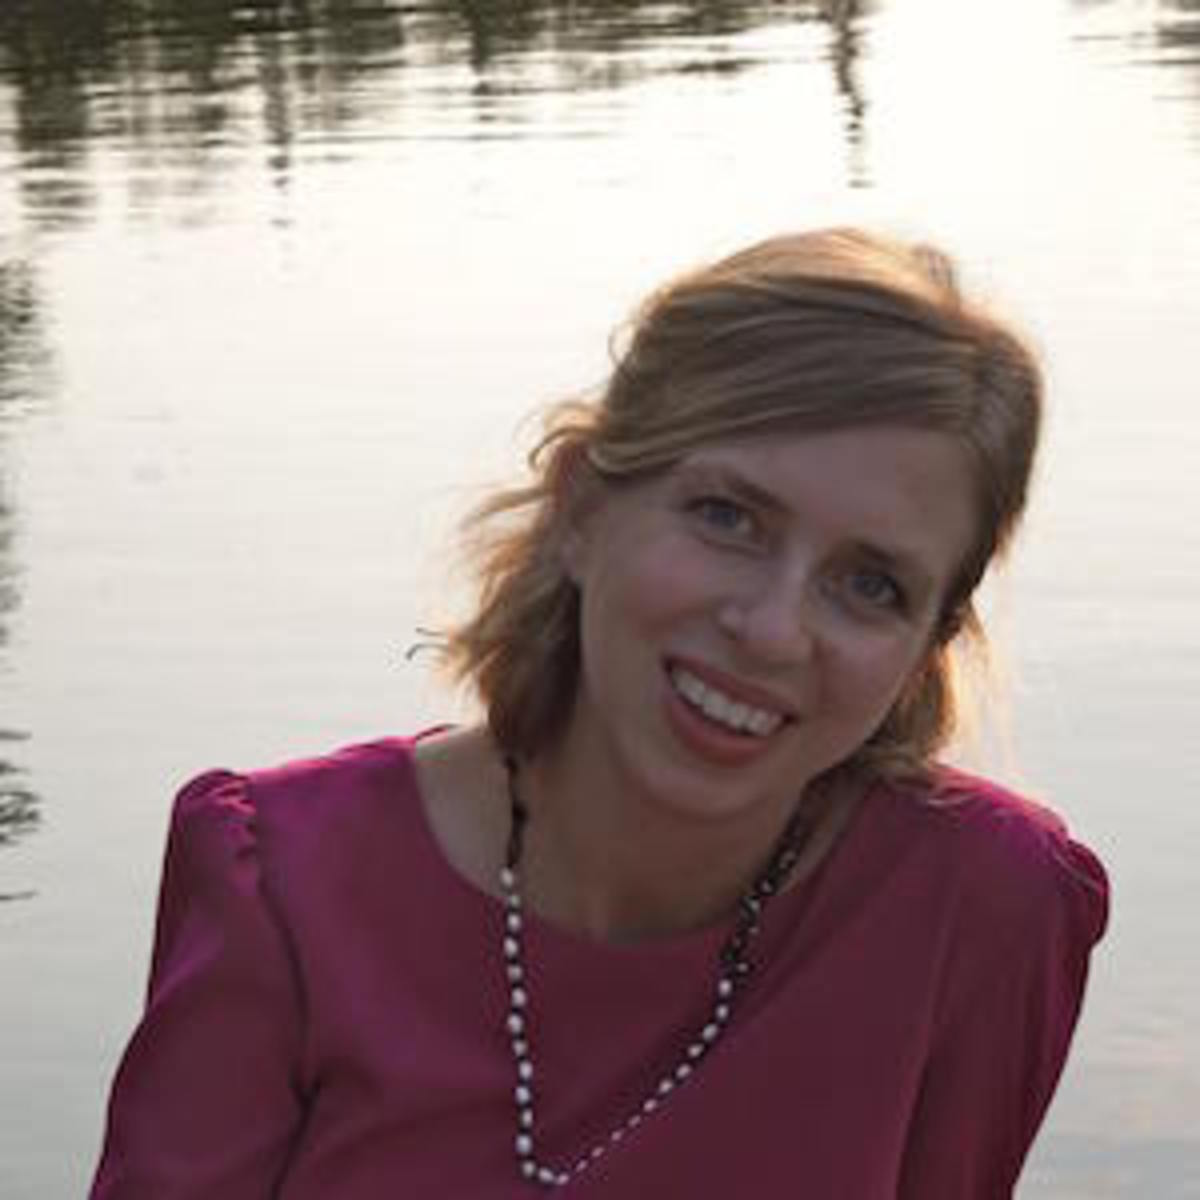 Samantha-Bohrman-author-writer